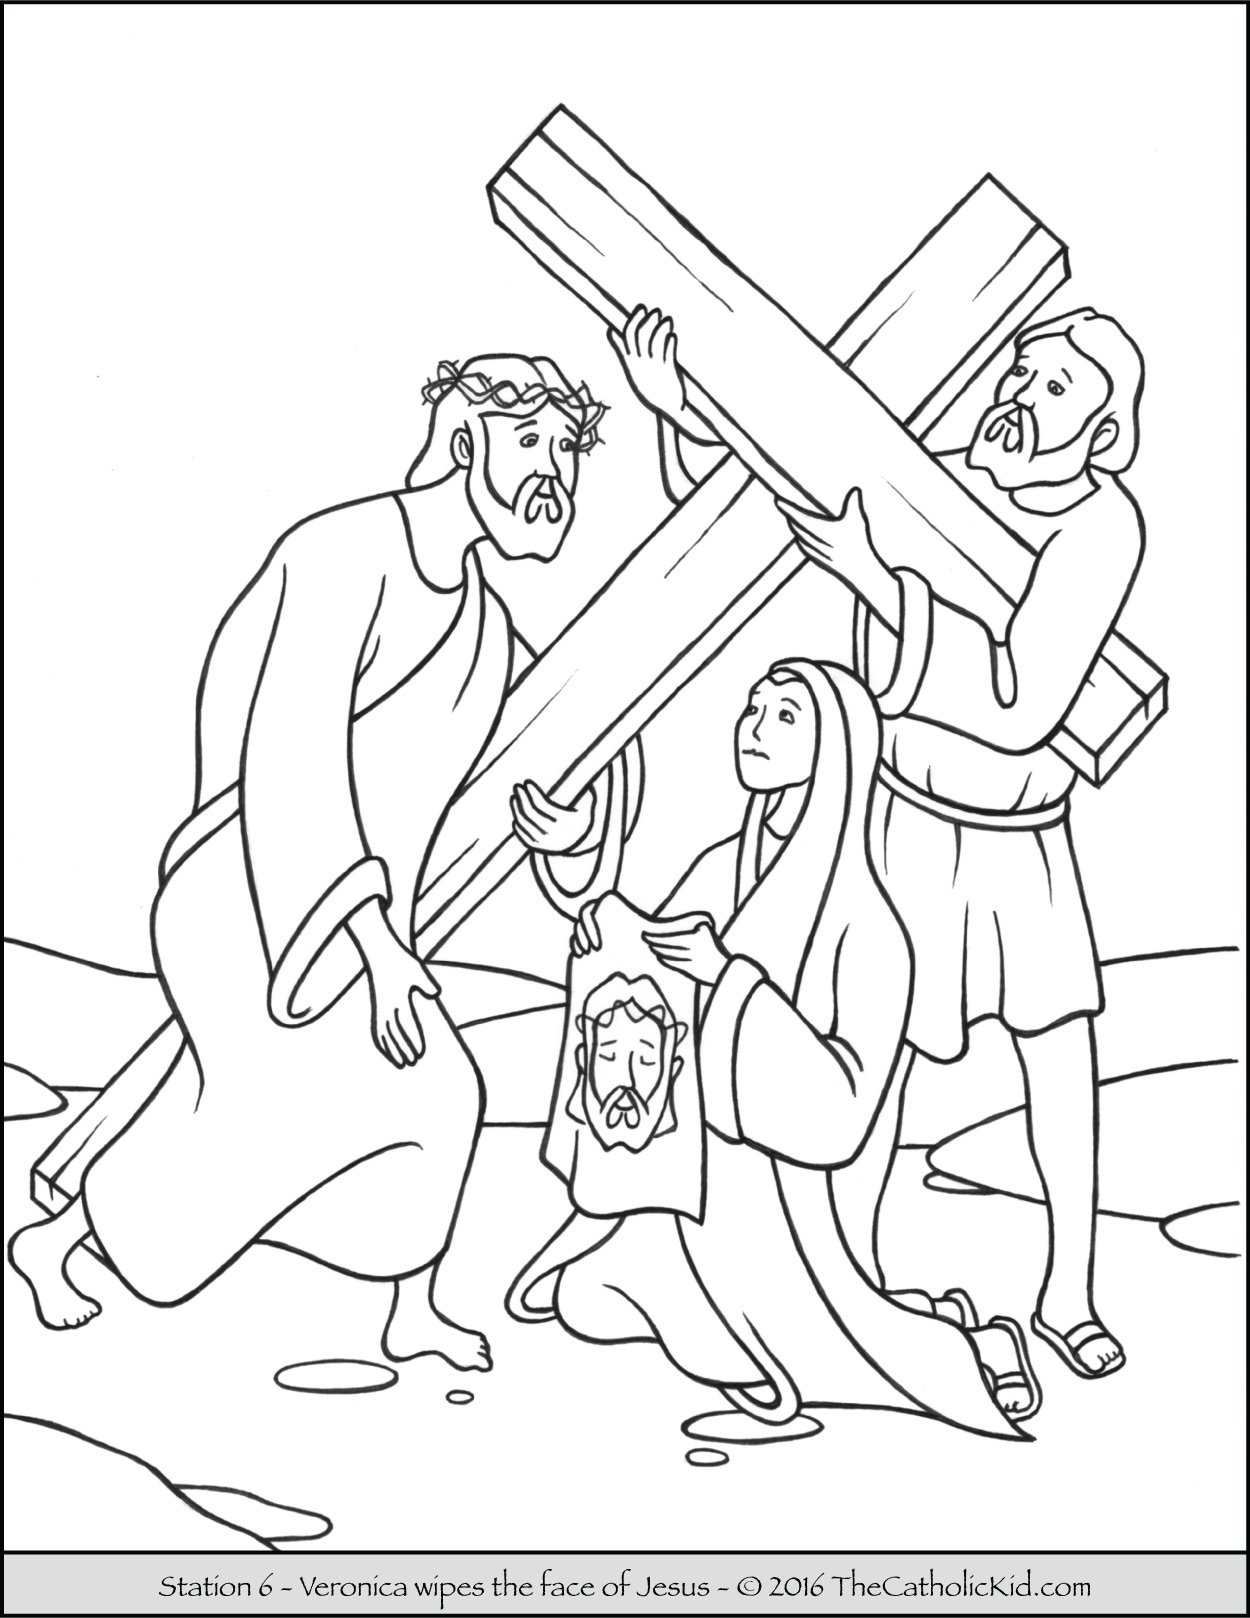 Stations of the cross coloring pages 6 veronica wipes the face of jesus